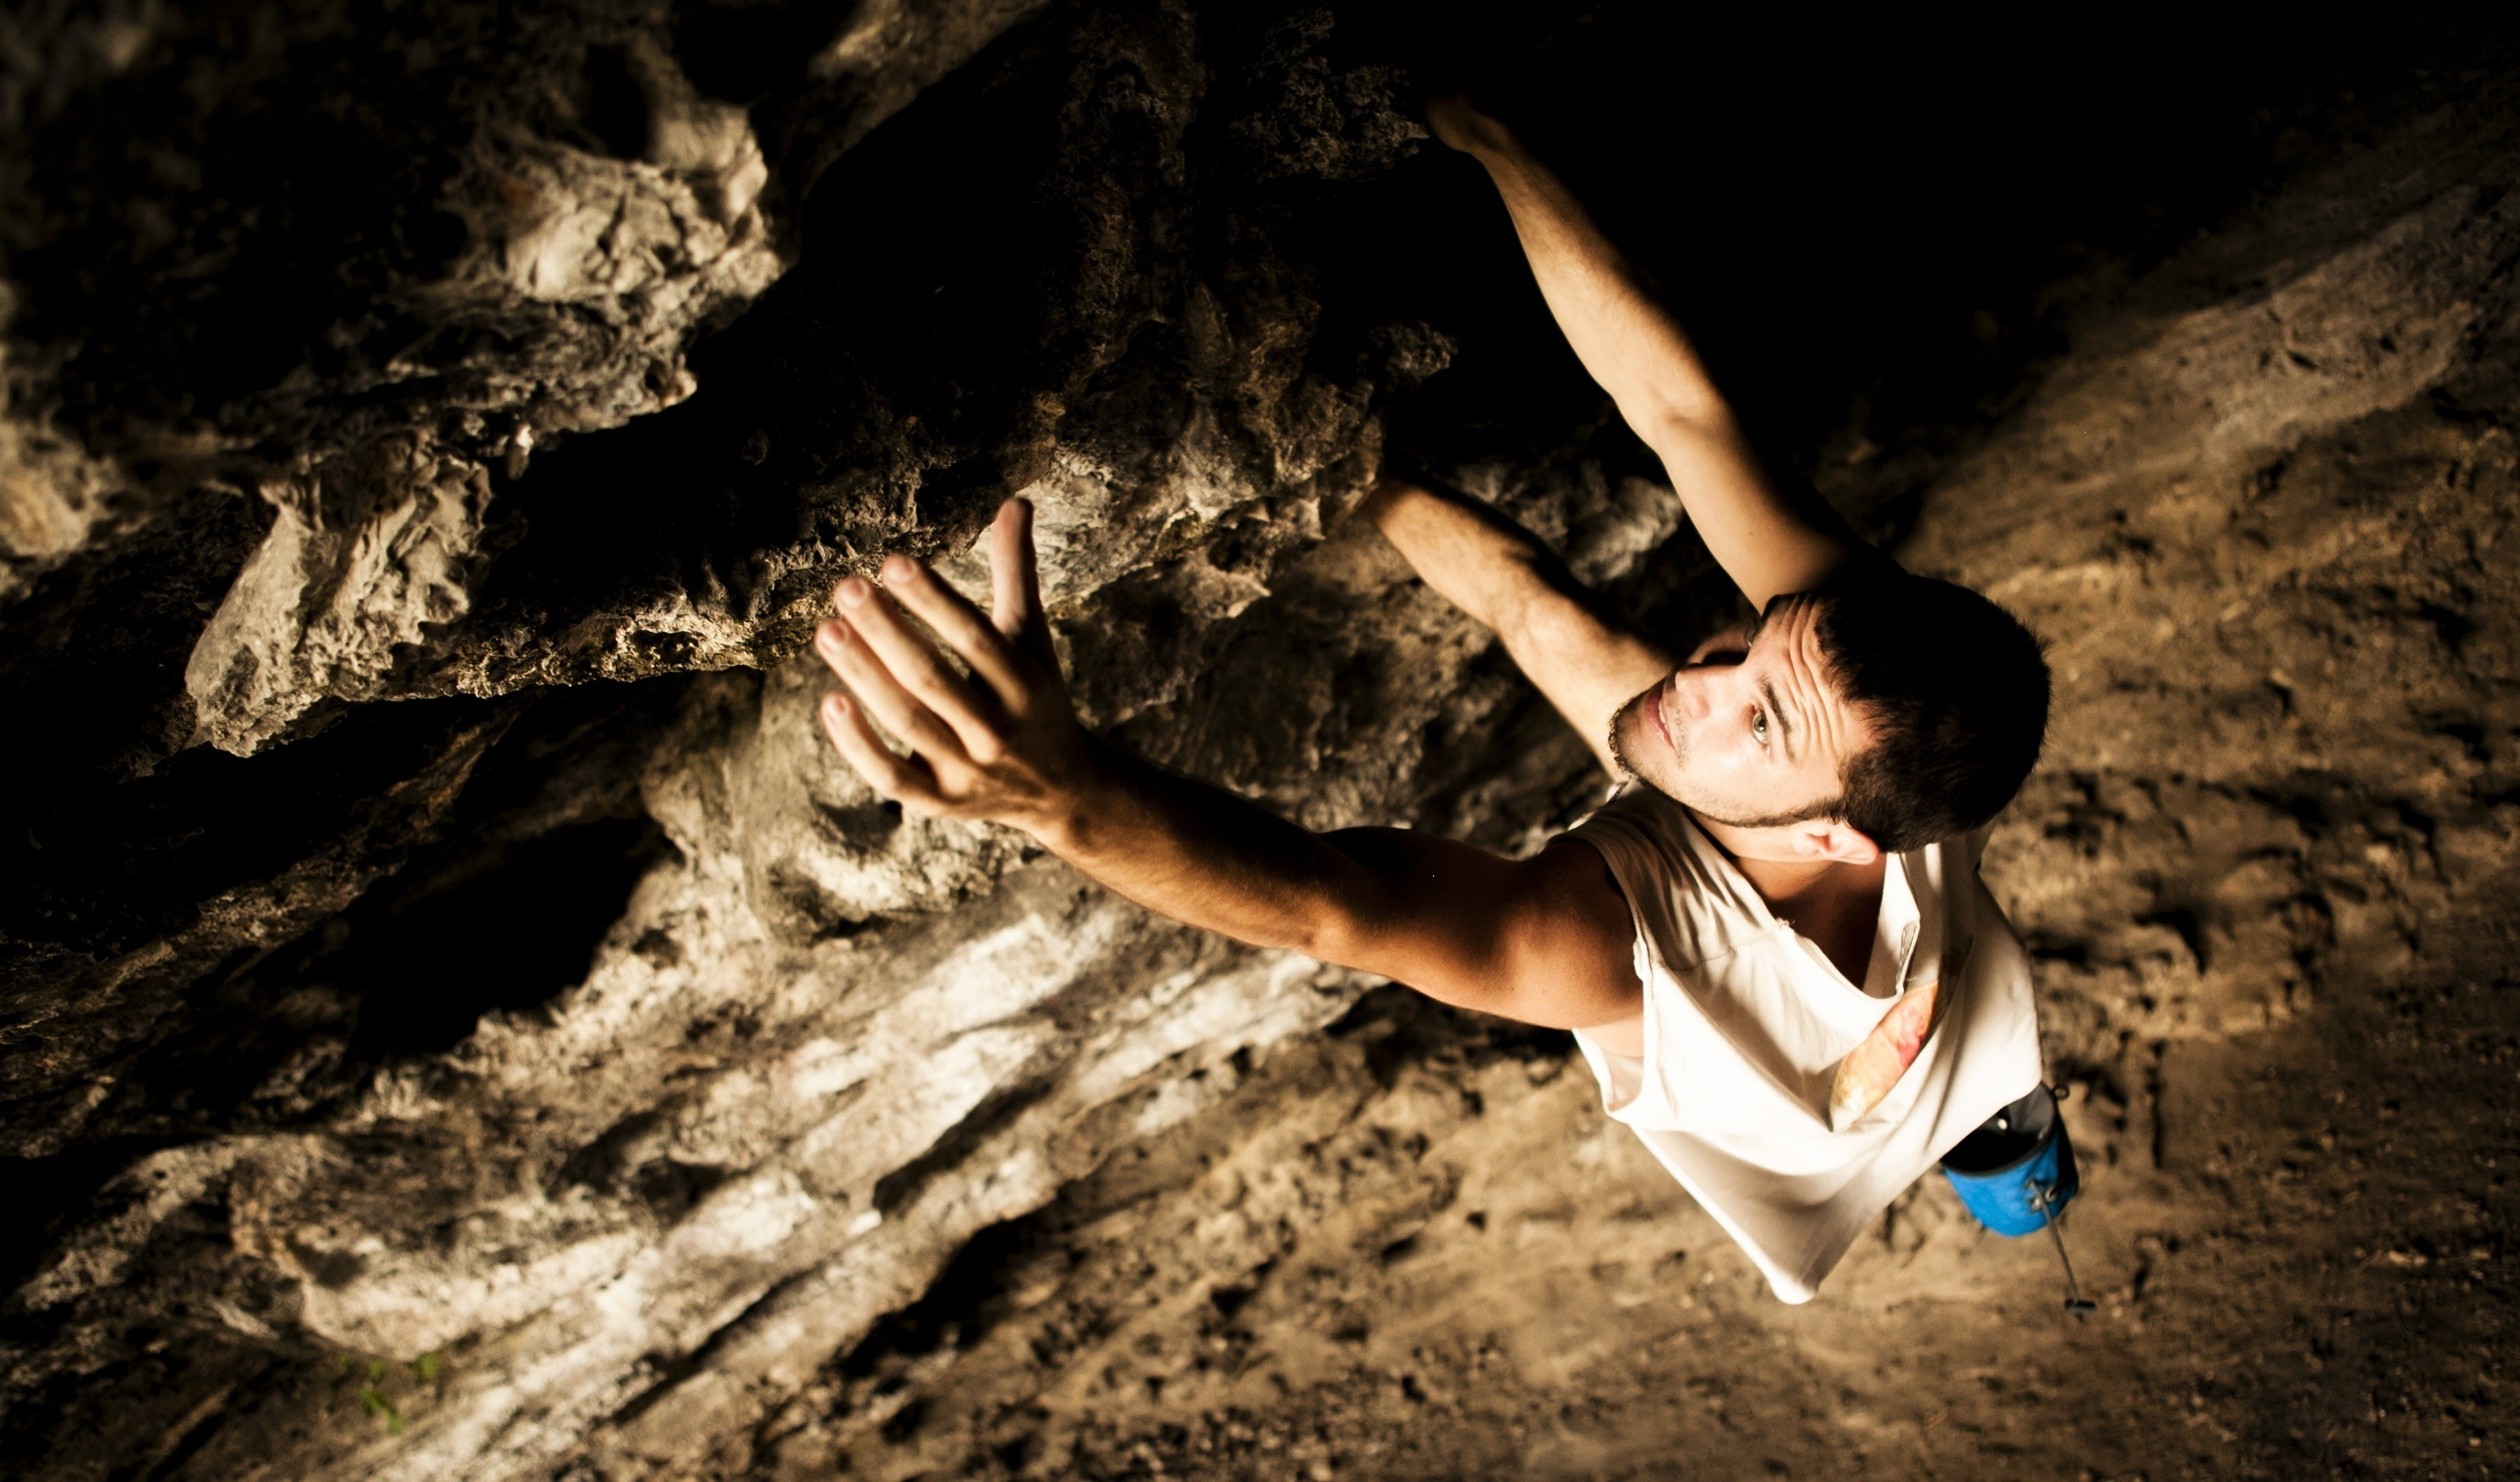 Outdoor rock climbing wallpaper